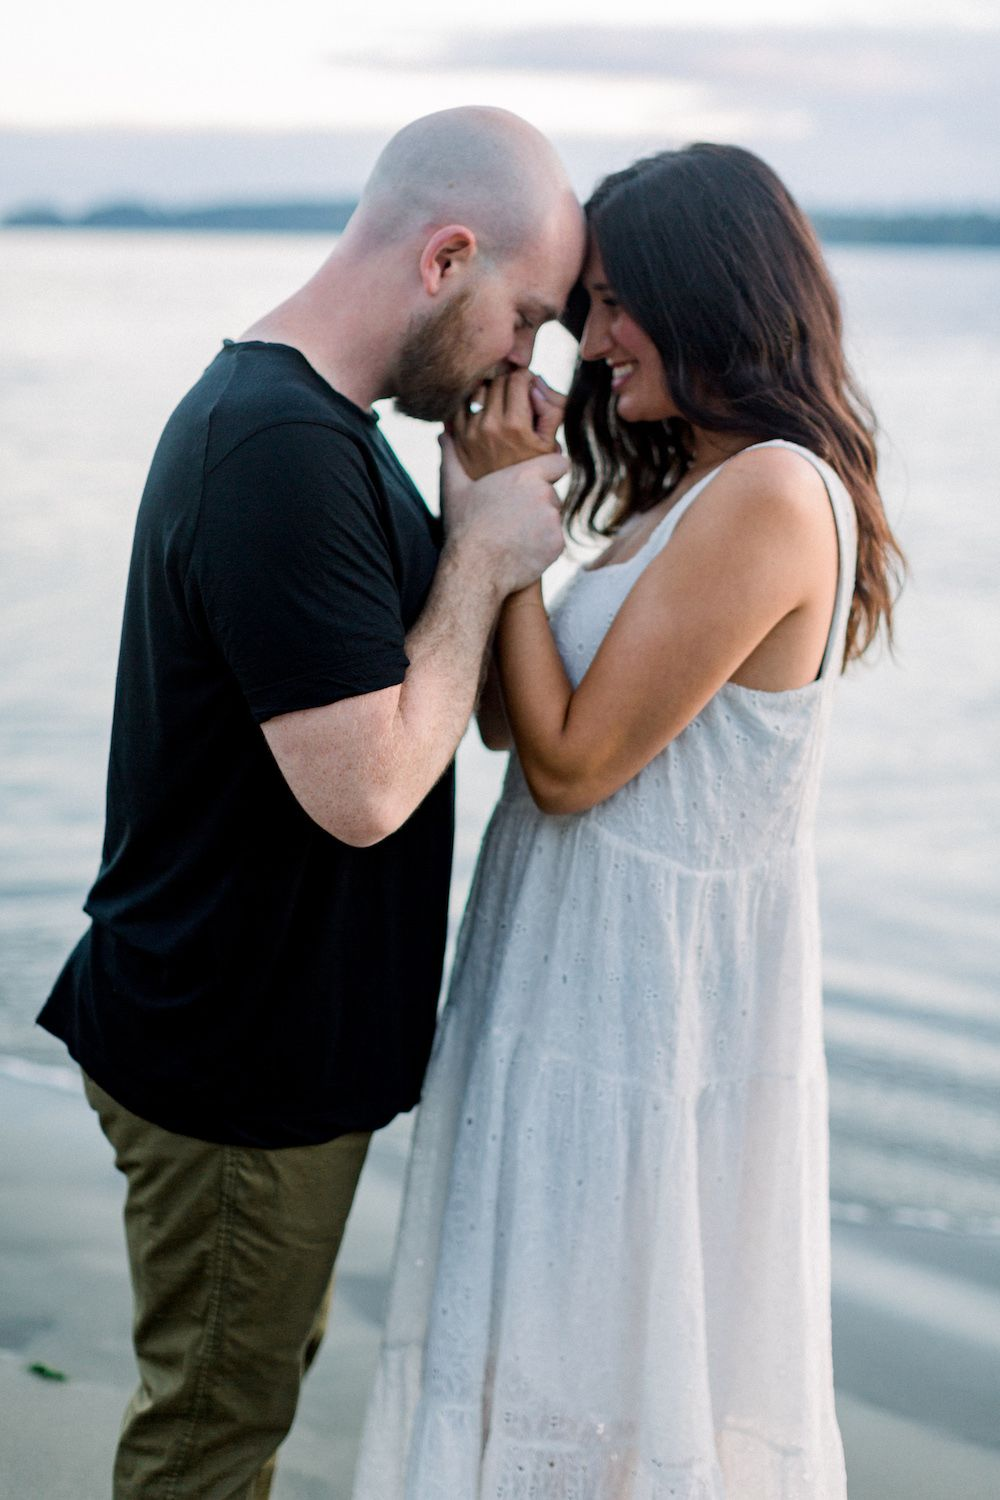 Boyfriend kissing girlfriend's hands during engagement session on the beach